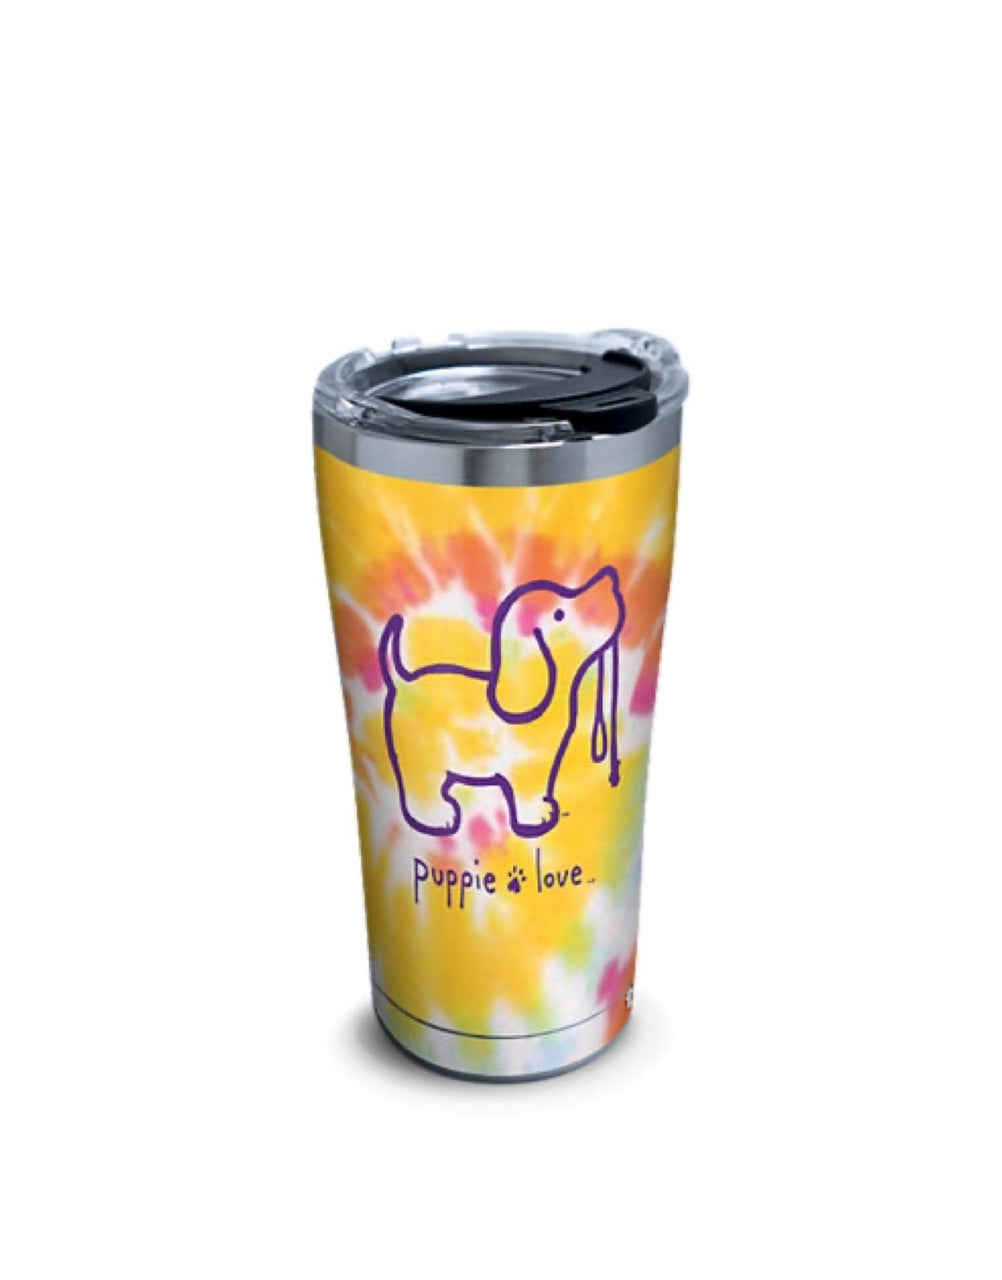 TIE DYE #2 20oz STAINLESS STEEL TUMBLER - Puppie Love